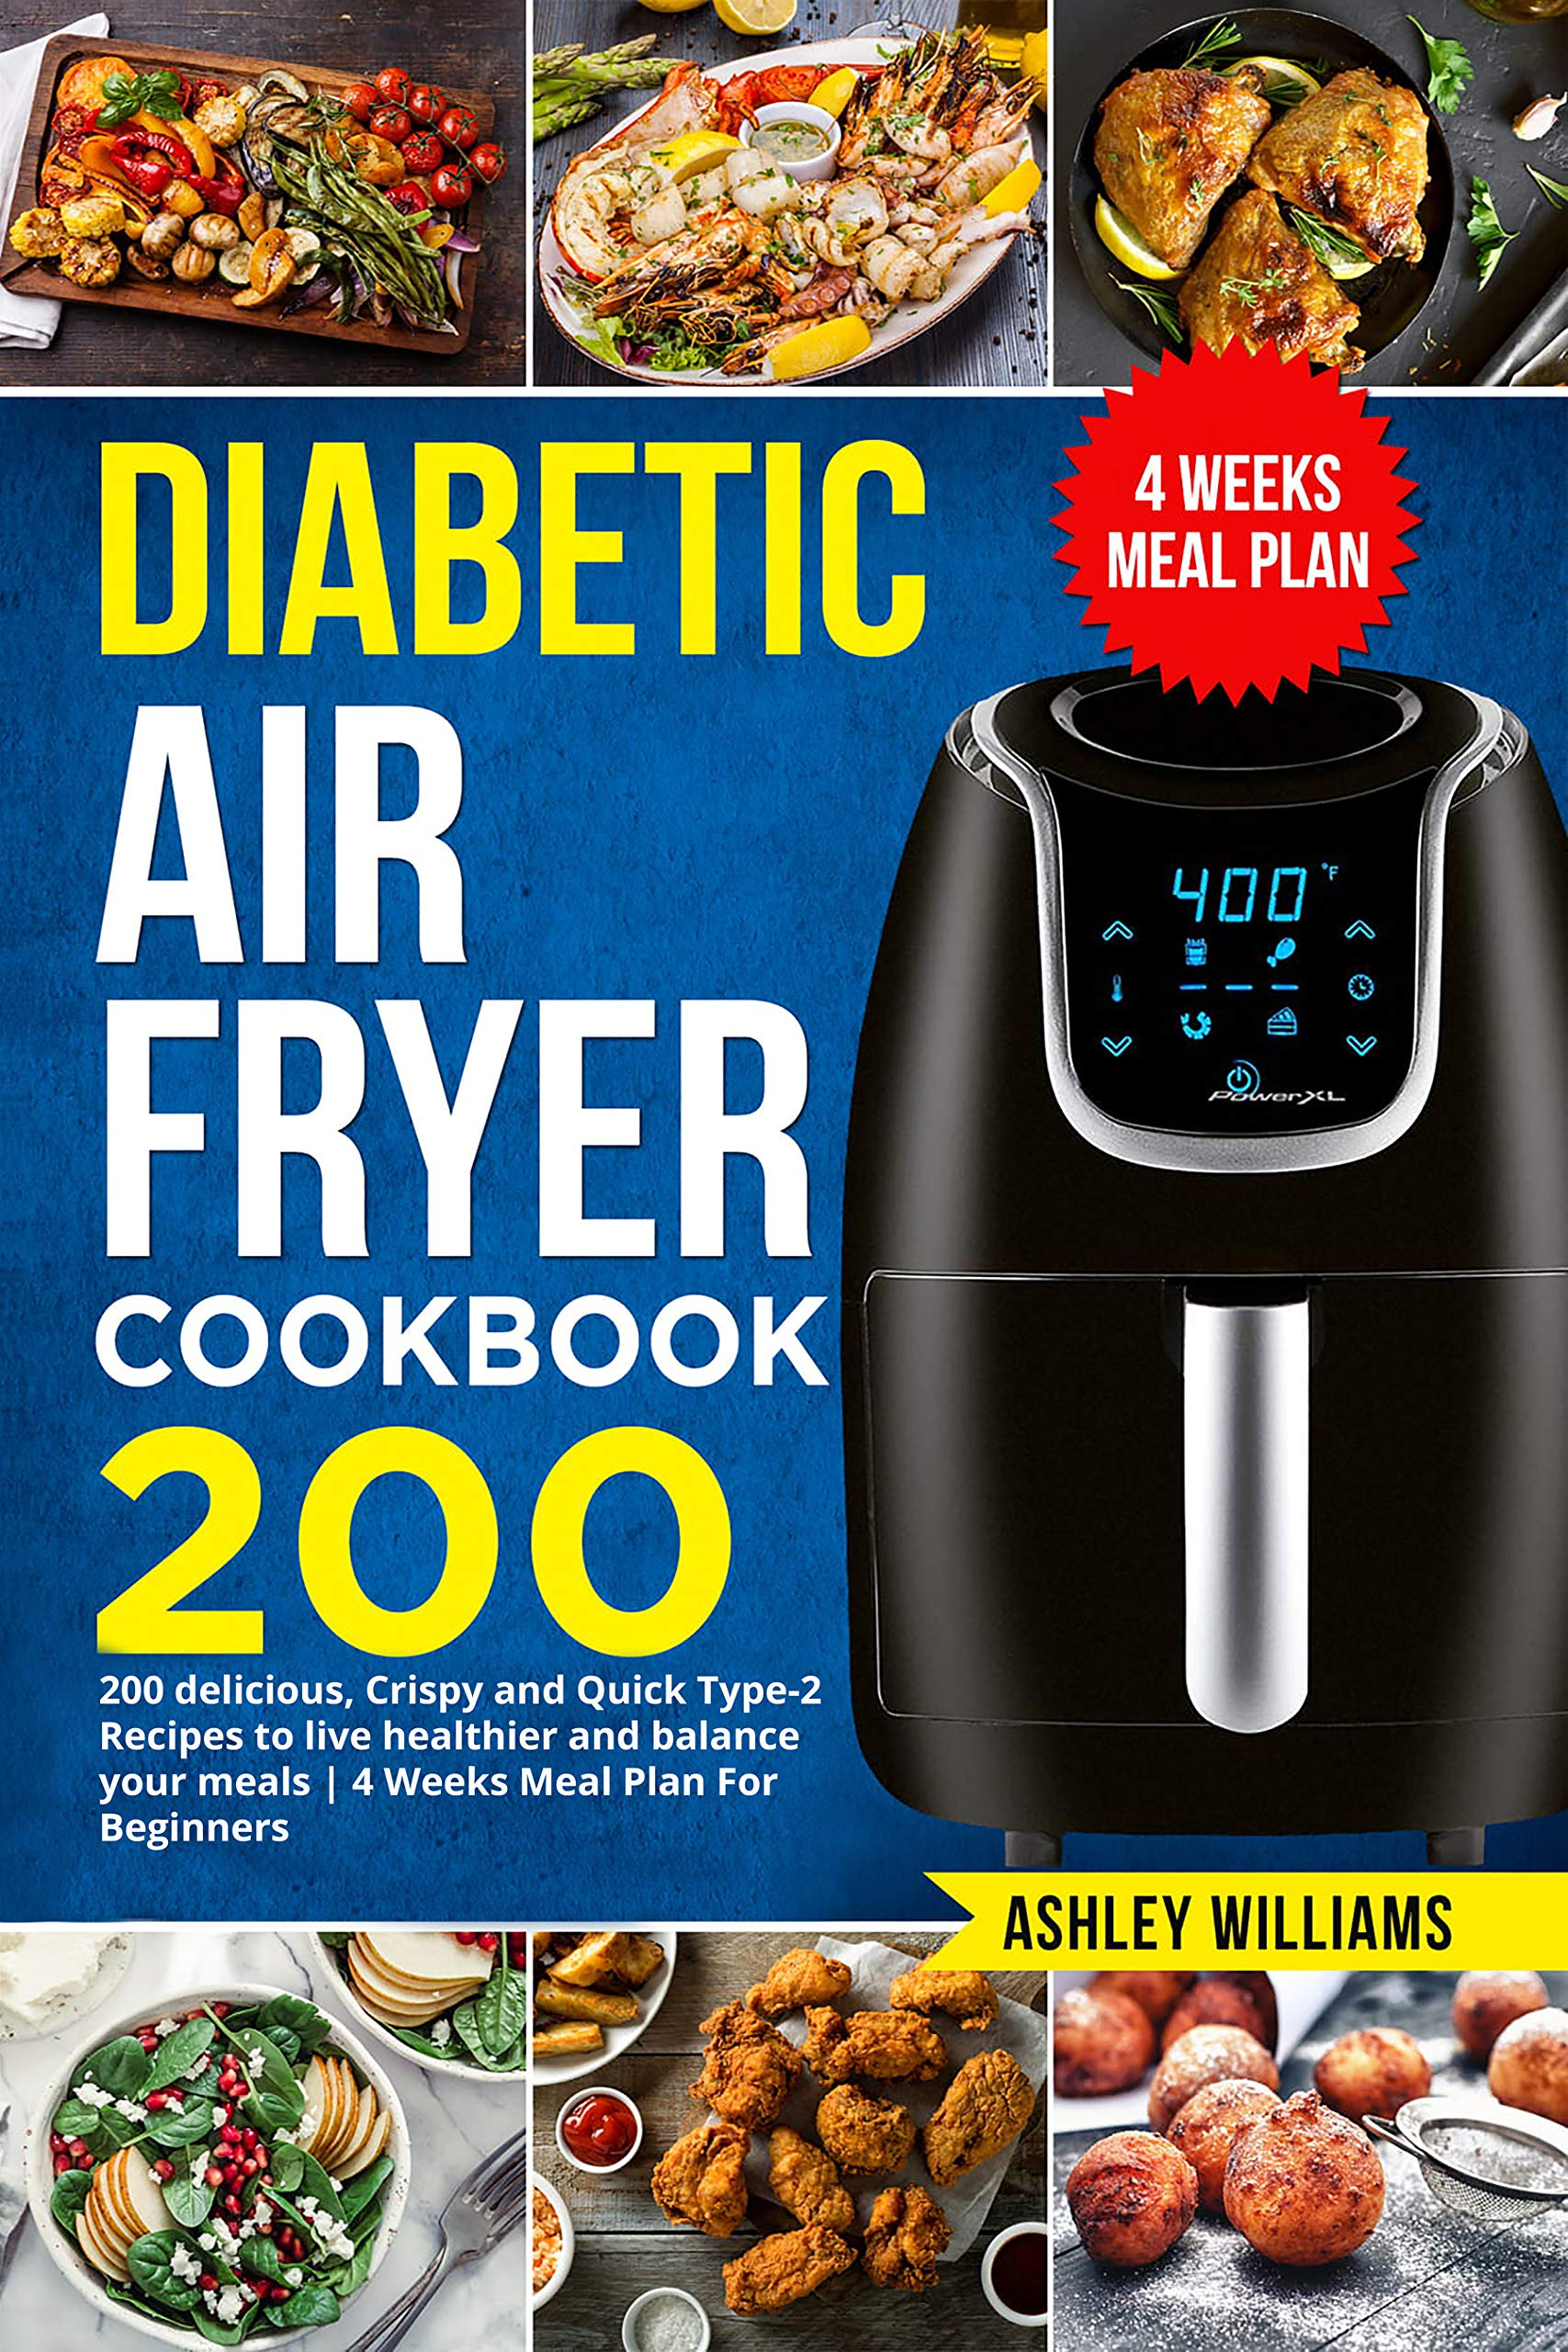 Image OfDiabetic Air Fryer Cookbook: 200 Delicious, Crispy And Quick Type-2 Recipes To Live Healthier And Balance Your Meals / 4 W...